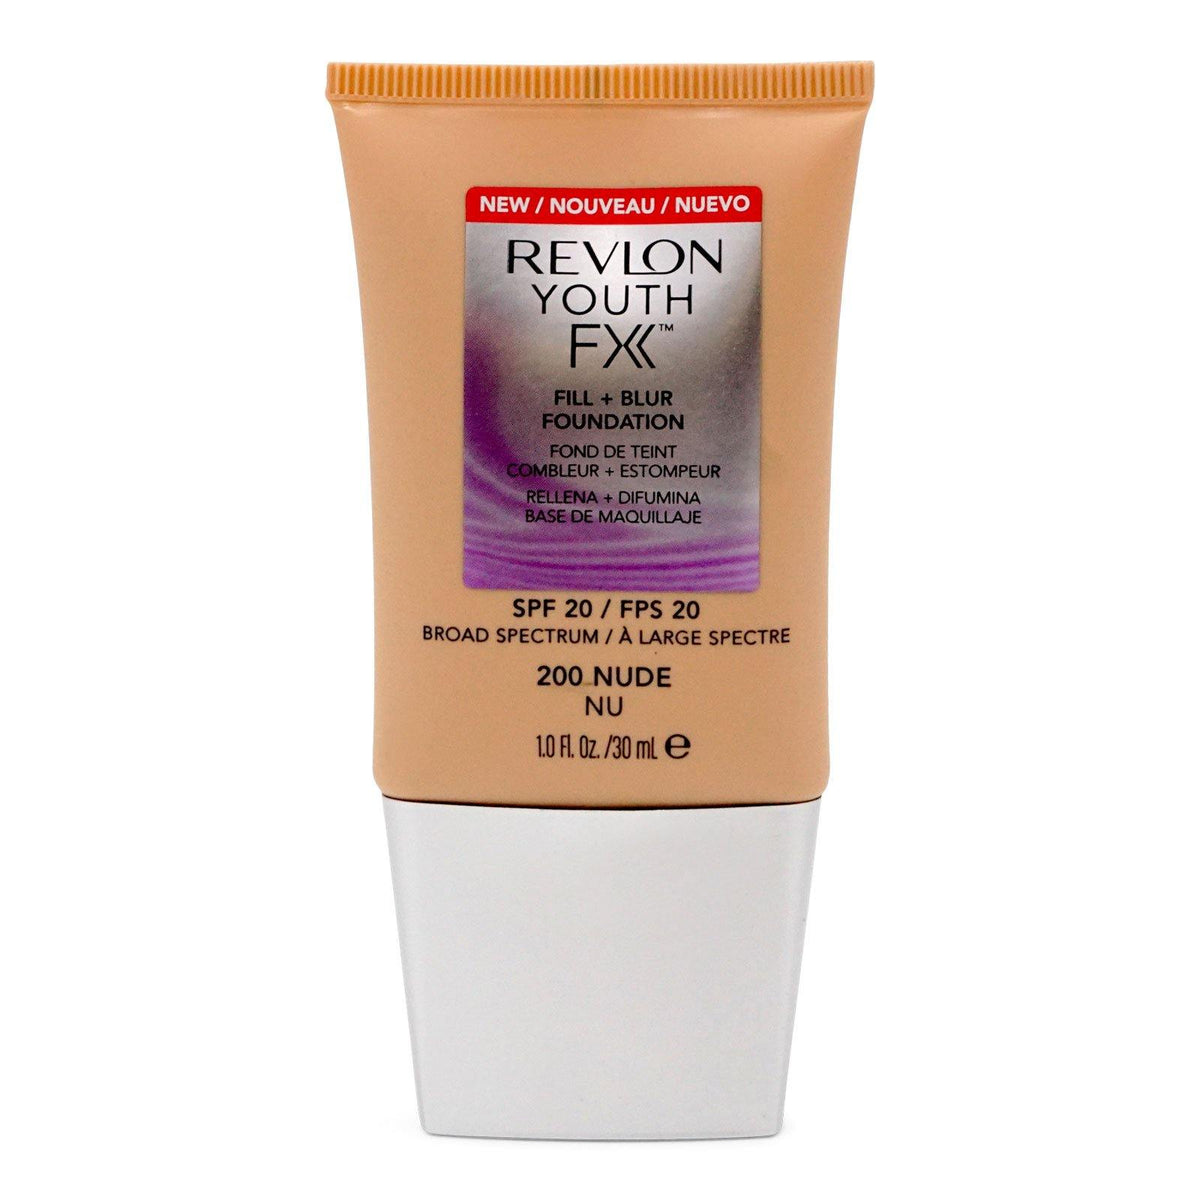 Revlon YOUTH FX FILL + BLUR SPF 20 FOUNDATION, Nude (24/cs)